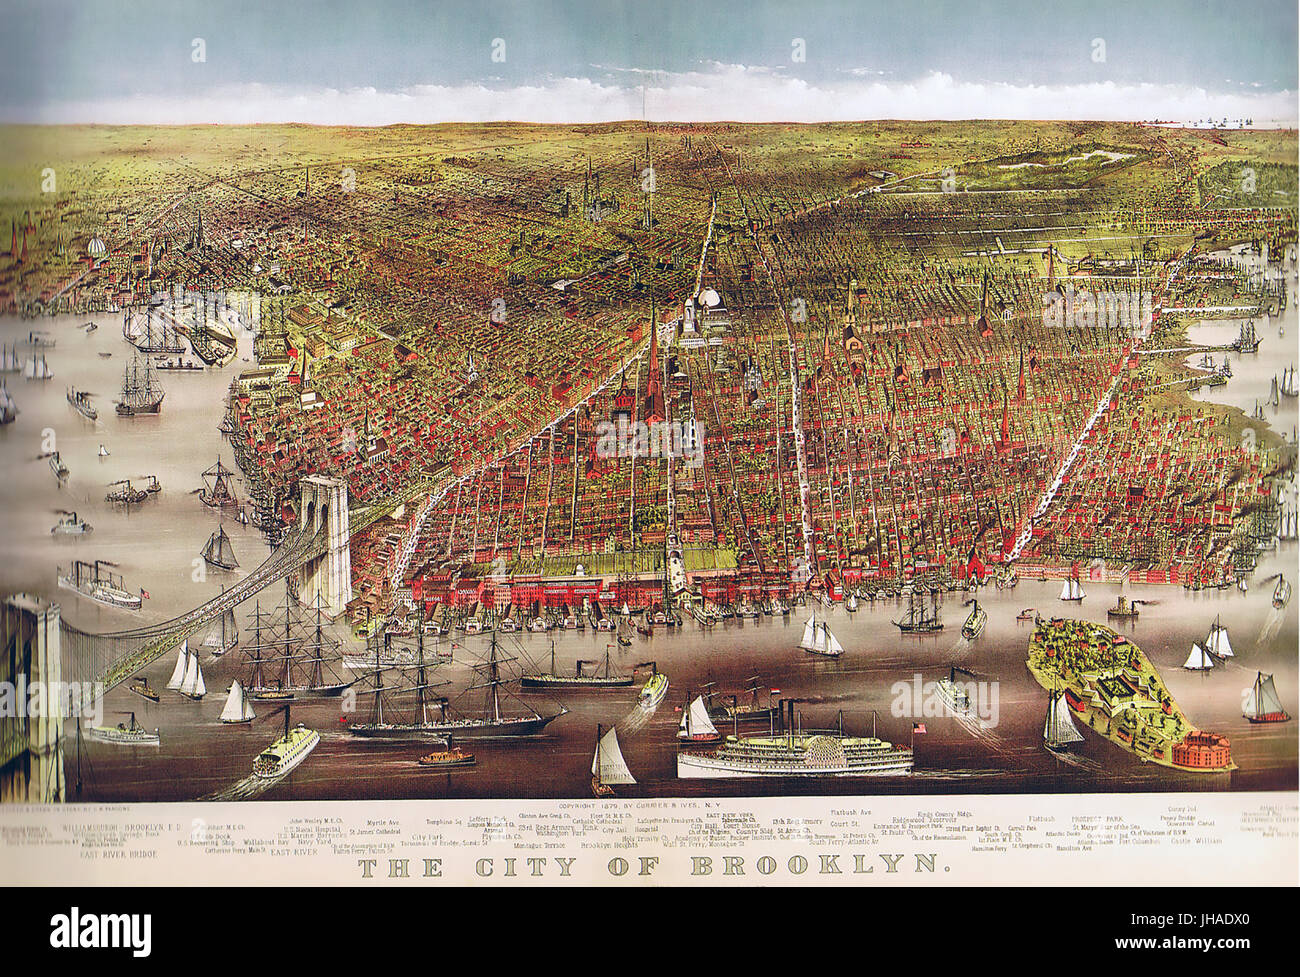 BROOKLYN, NEW YORK  1879 print by Currier & Ives - Stock Image